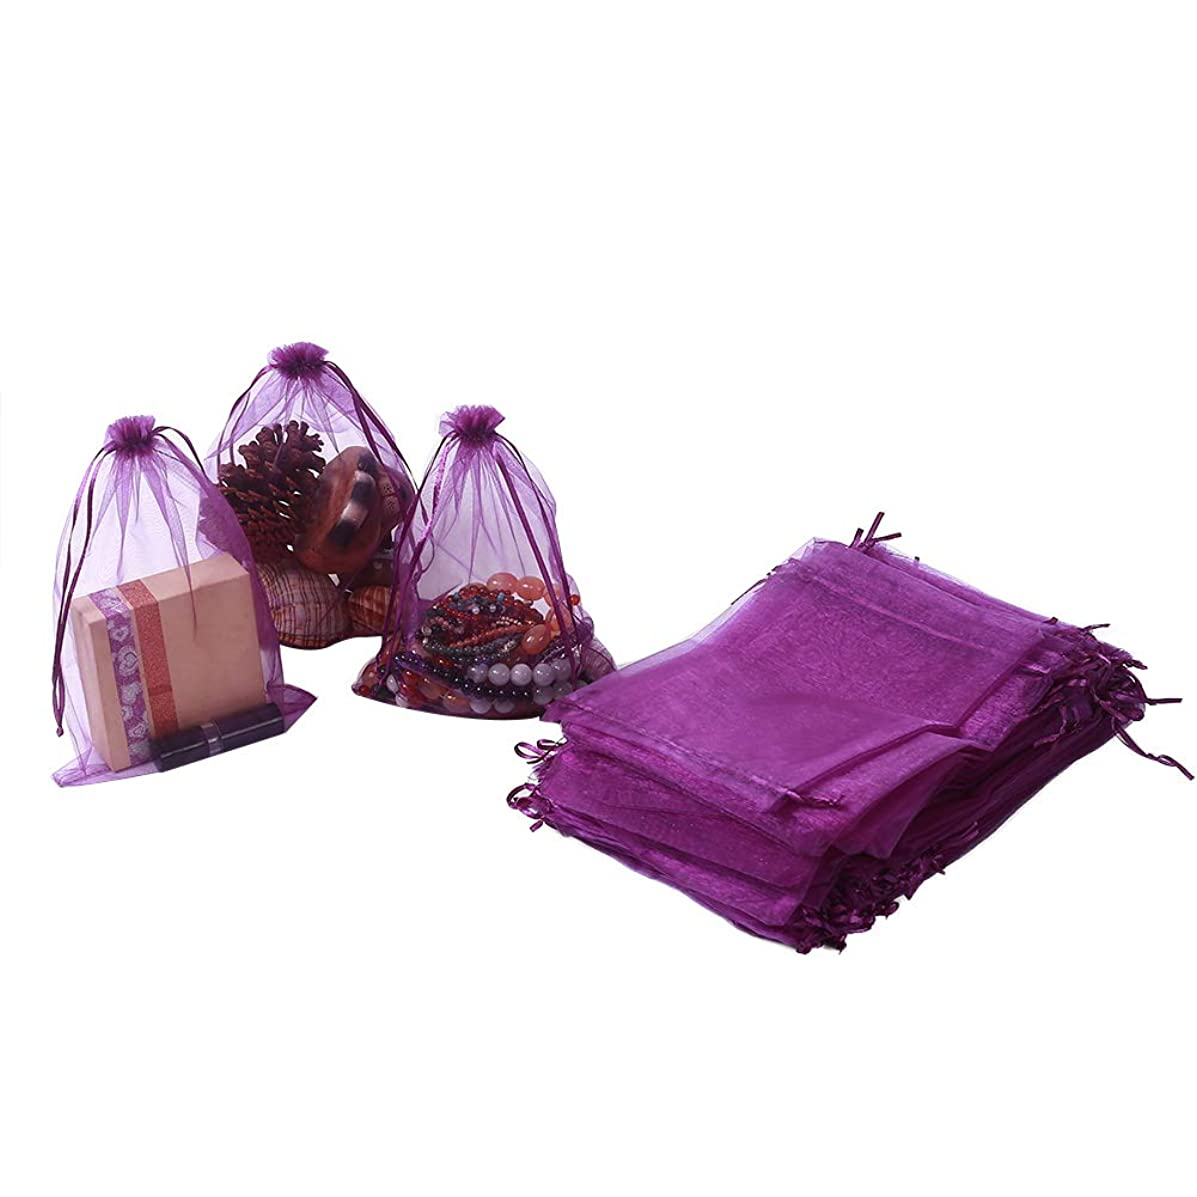 """HRX Package 100pcs Organza Bags 6.5"""" x 8.9"""", Purple Large Mesh Gift Drawstring Bags for Christmas Wedding Shower Party Favors Jewelry Samples"""